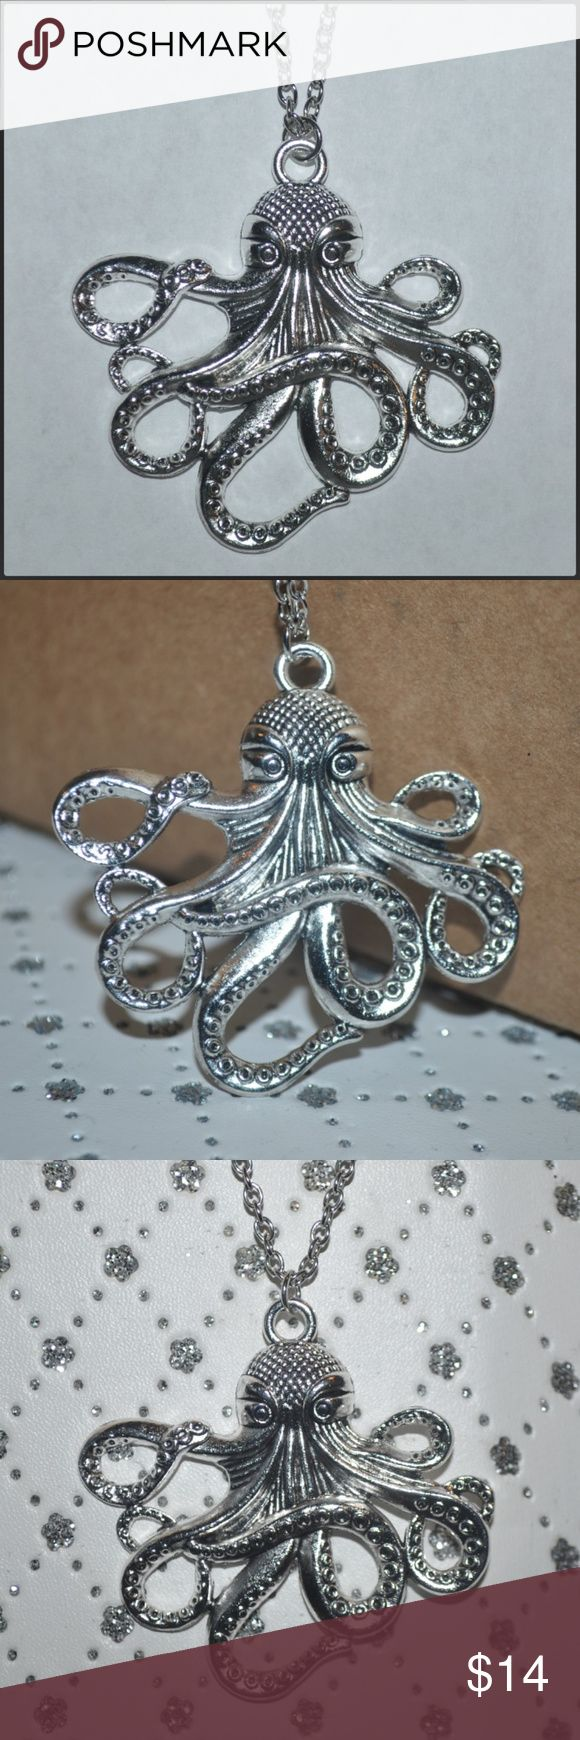 Silver Octopus Necklace BNWOT // tags: ocean sea tentacles tentacle creatures creature animals animal necklaces jewelry cool rad neat vintage grey gray color shine badass awesome amazing incredible new nwot wicked witchy pirates pirate witch nautical tattoo shop bundle lot multiple accessories accessory pretty beautiful beauty gorgeous statement piece pendants pendant statements unique unisex women womens girls girl chain adorable cute alternative rebel Jewelry Necklaces